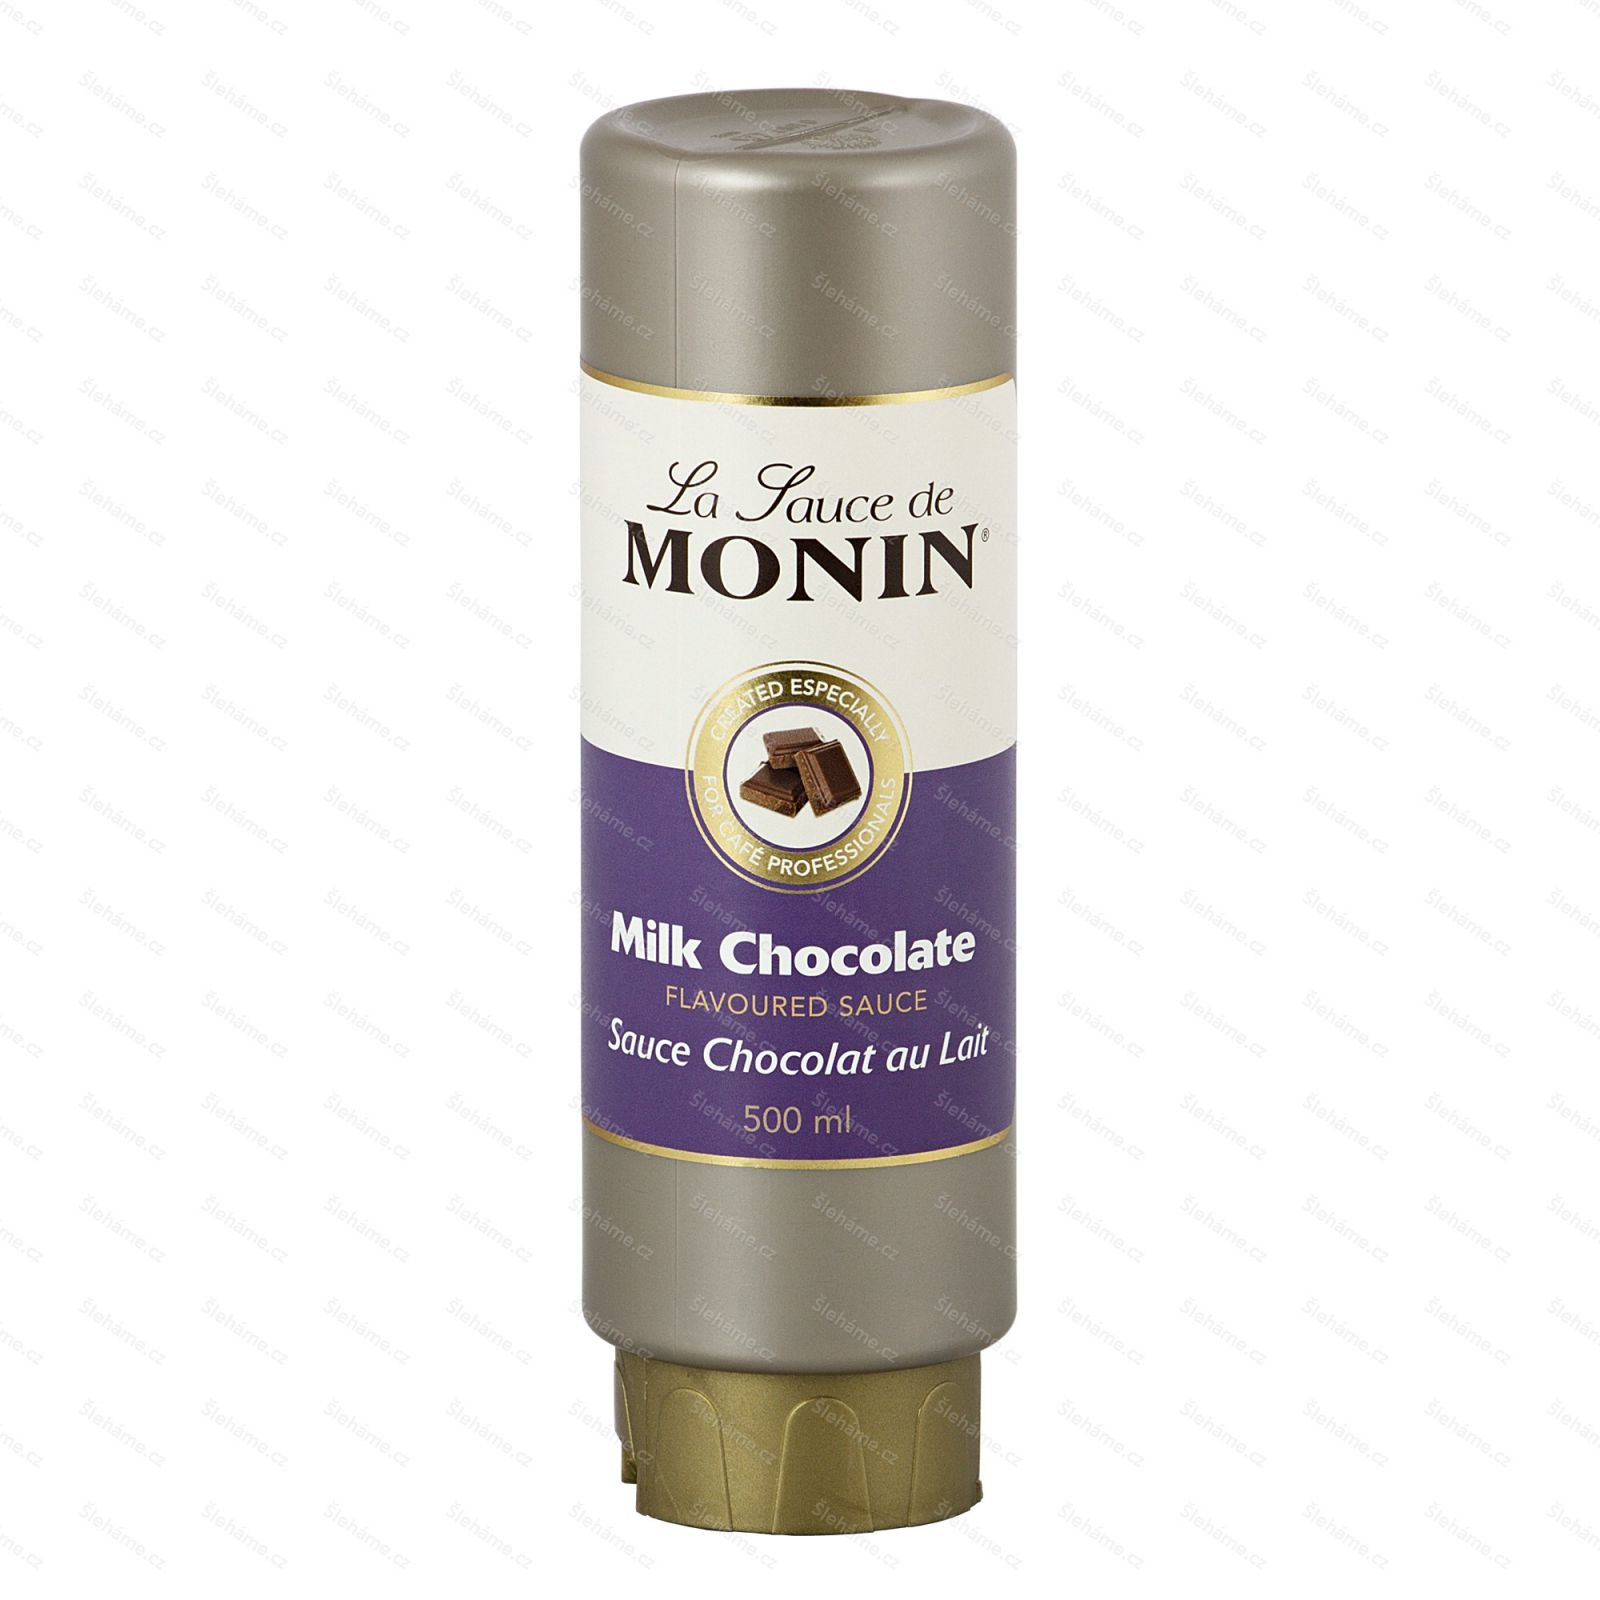 Toping Monin Milk Chocolate, 500 ml